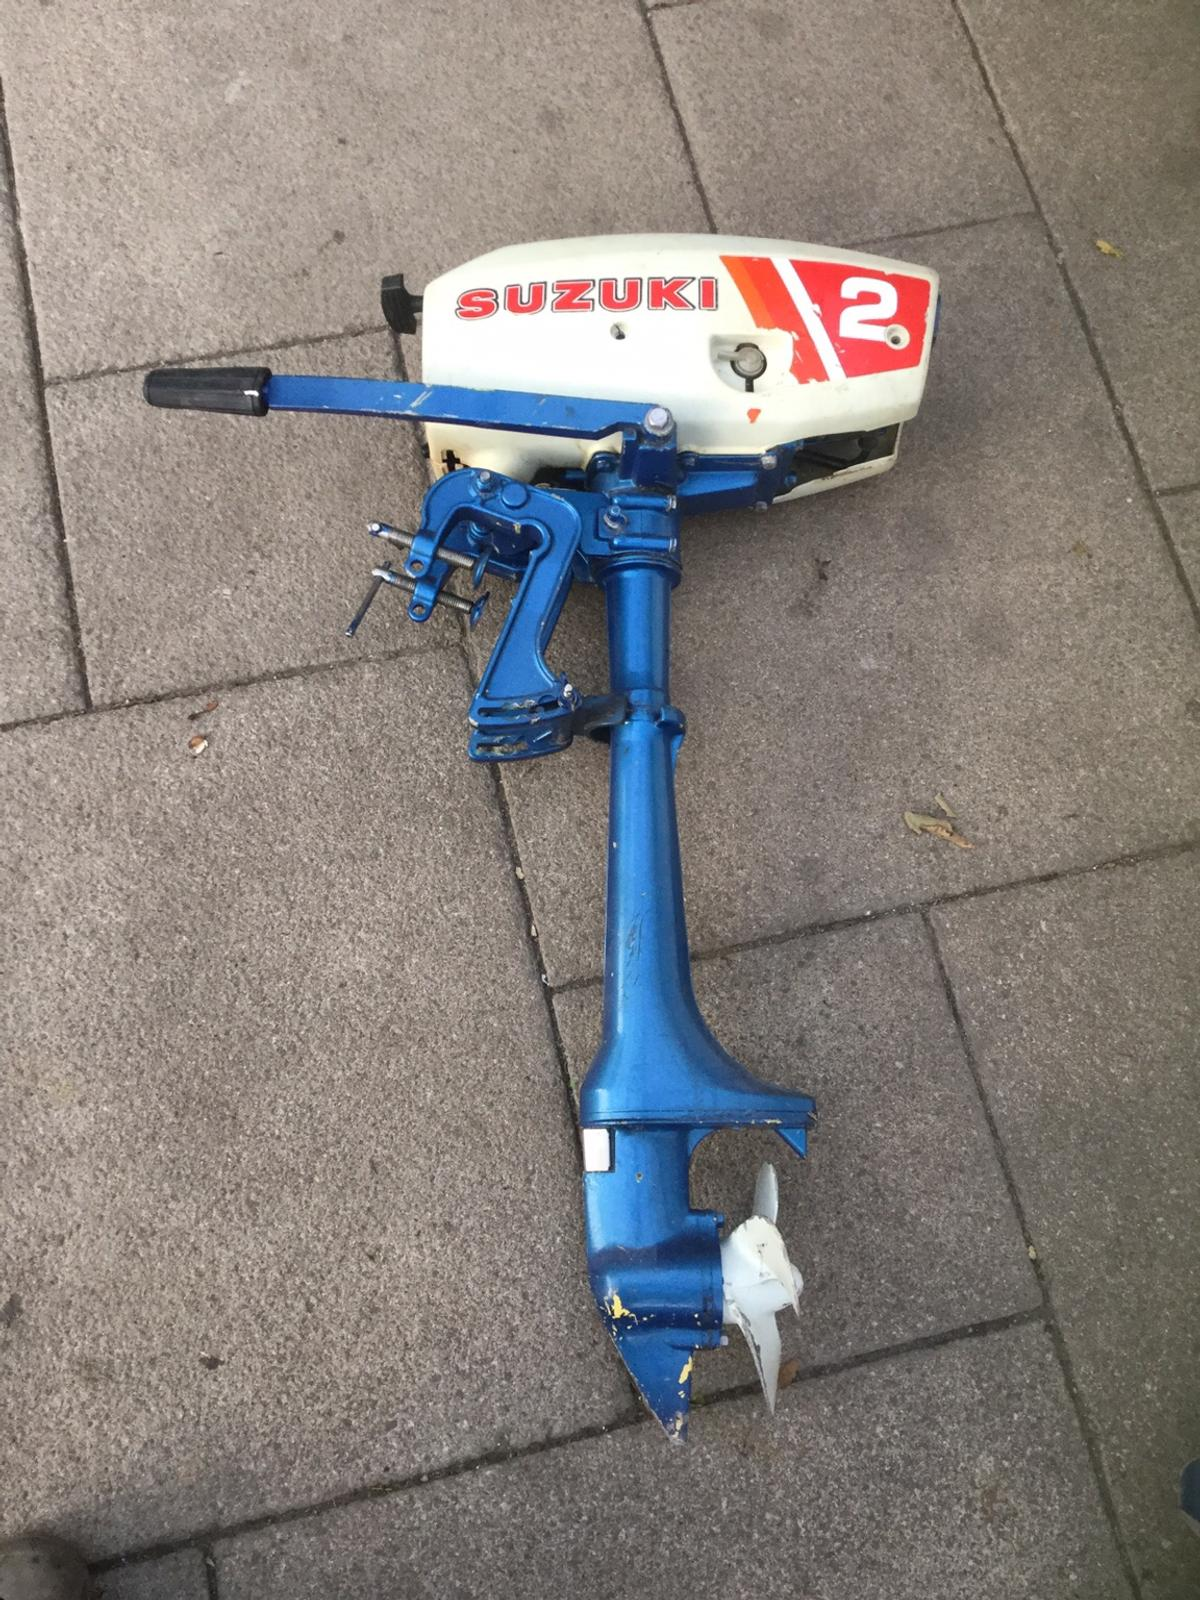 Suzuki 2 HP outboard Motor £25 in SE6 London for £25 00 for